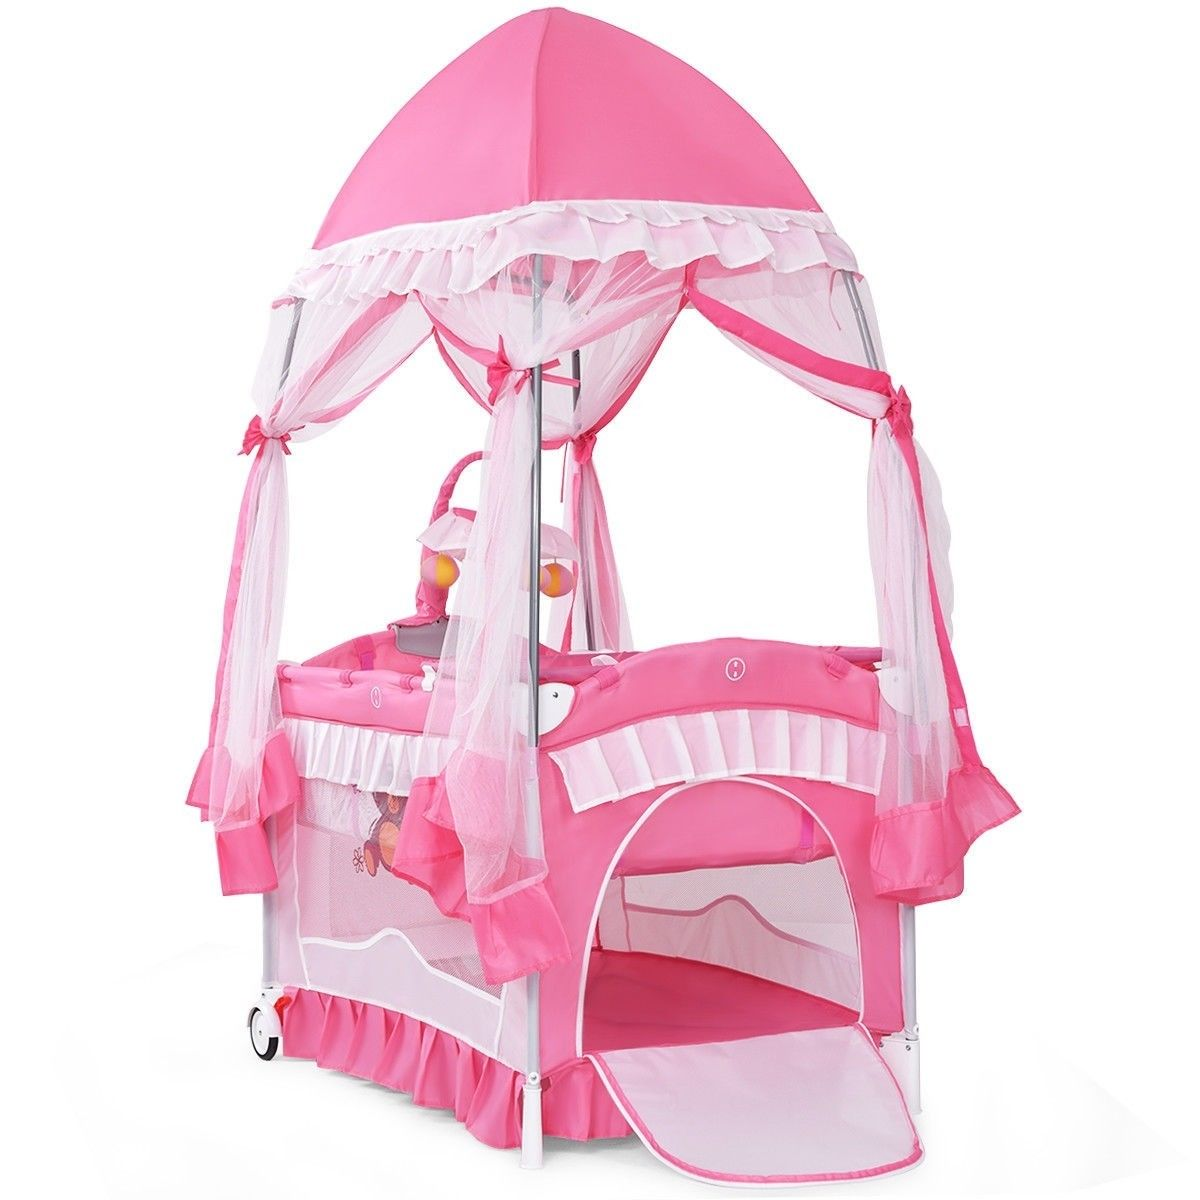 """GHP 43""""x31""""x30"""" Pink & White Iron Pipe Oxford & PP Baby Playpen Crib with Bassinet by Globe House Products"""